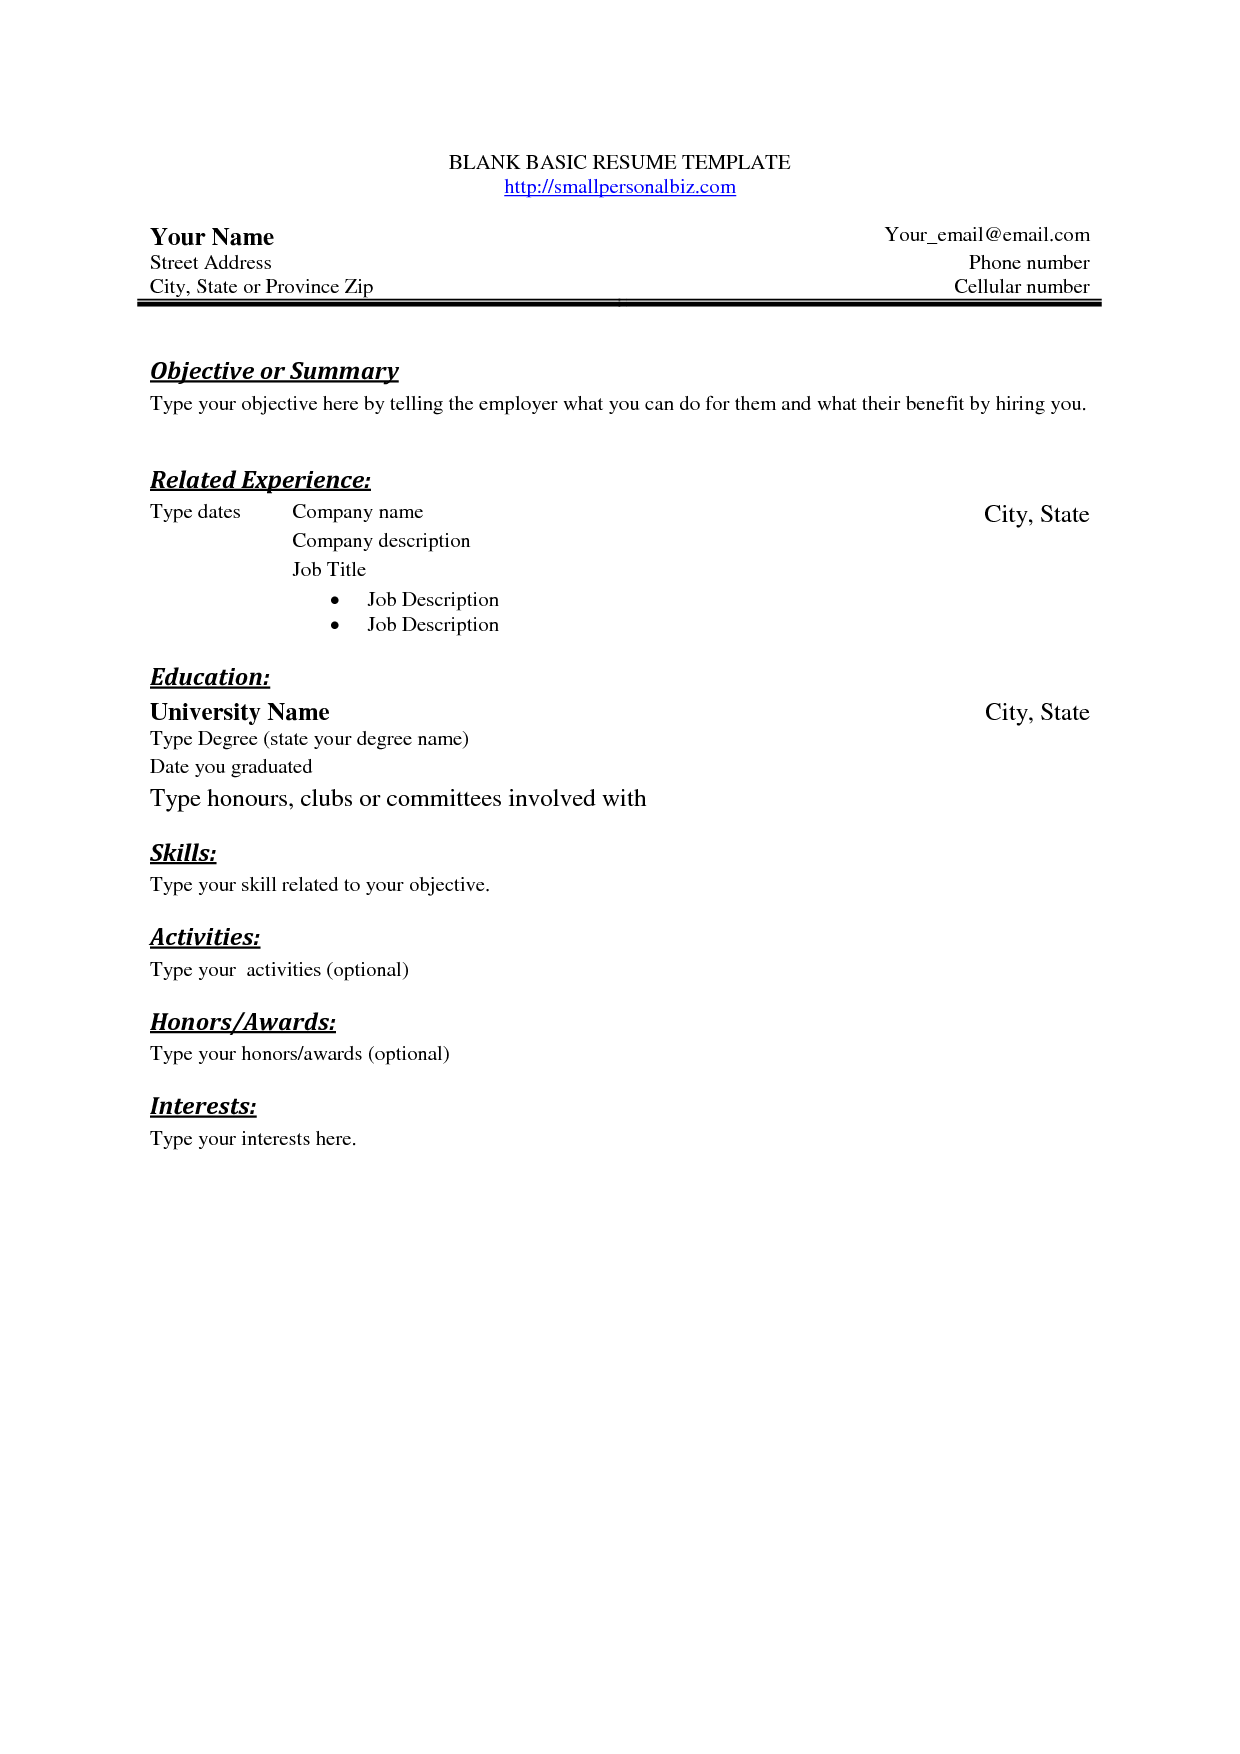 simple resume templates free basic blank resume template free basic sample 24878 | 187244c0990bfcb5f585003b358beacc